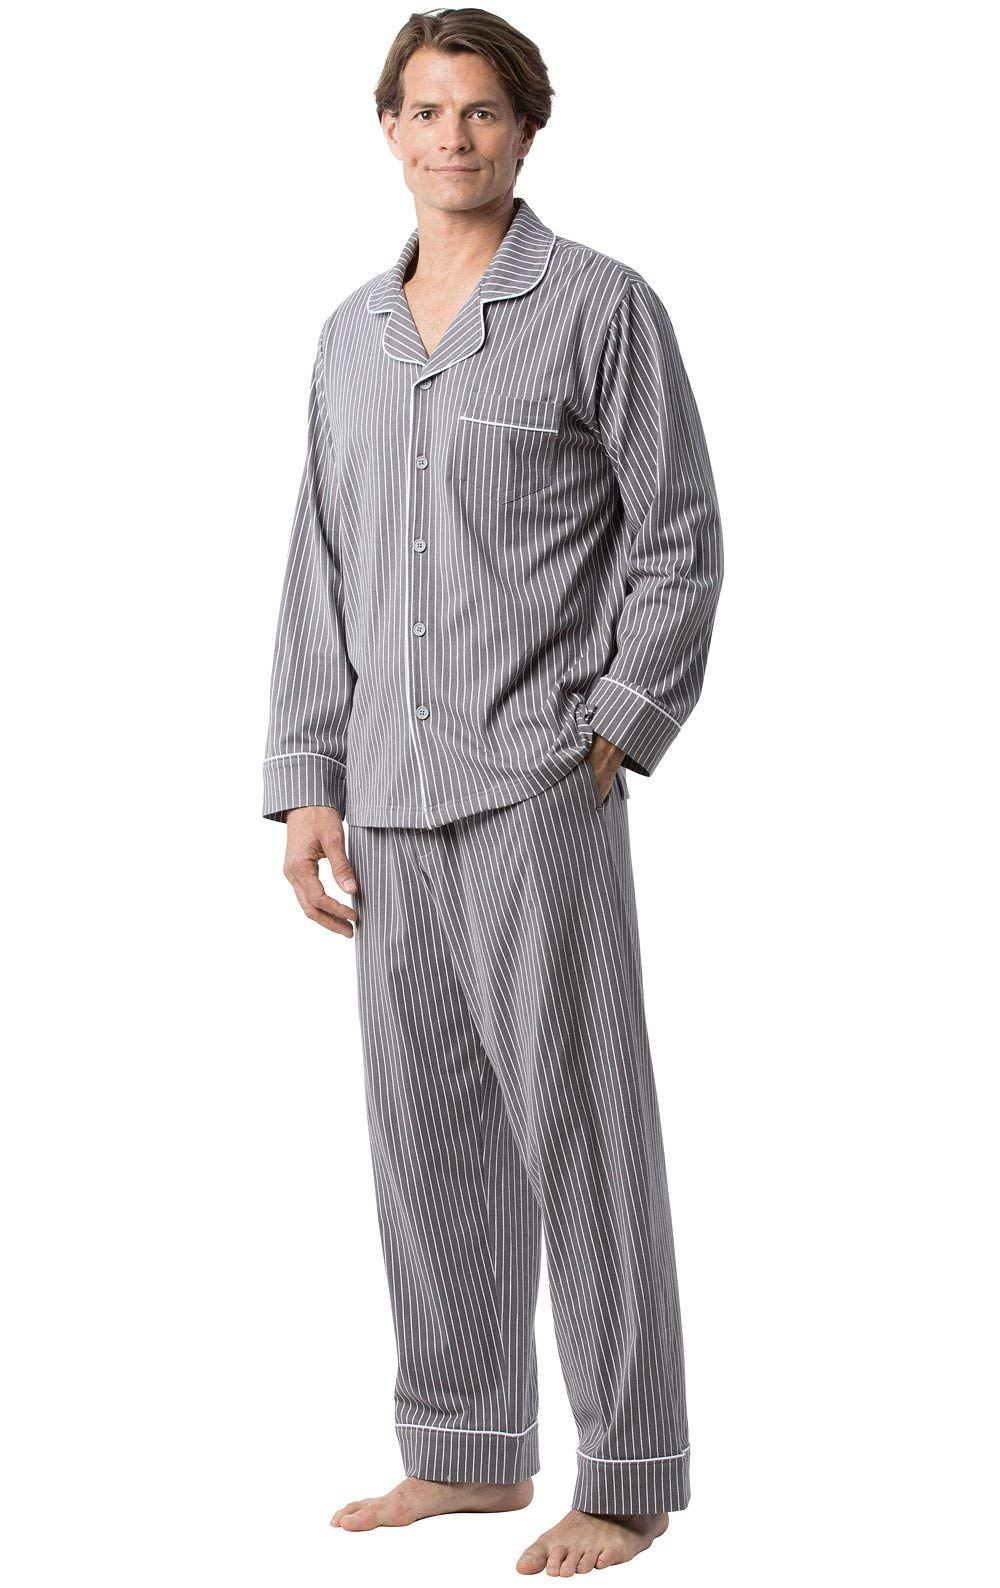 PajamaGram Classic Mens Pajamas Cotton - Men Pajamas Set, Charcoal Stripe, SM